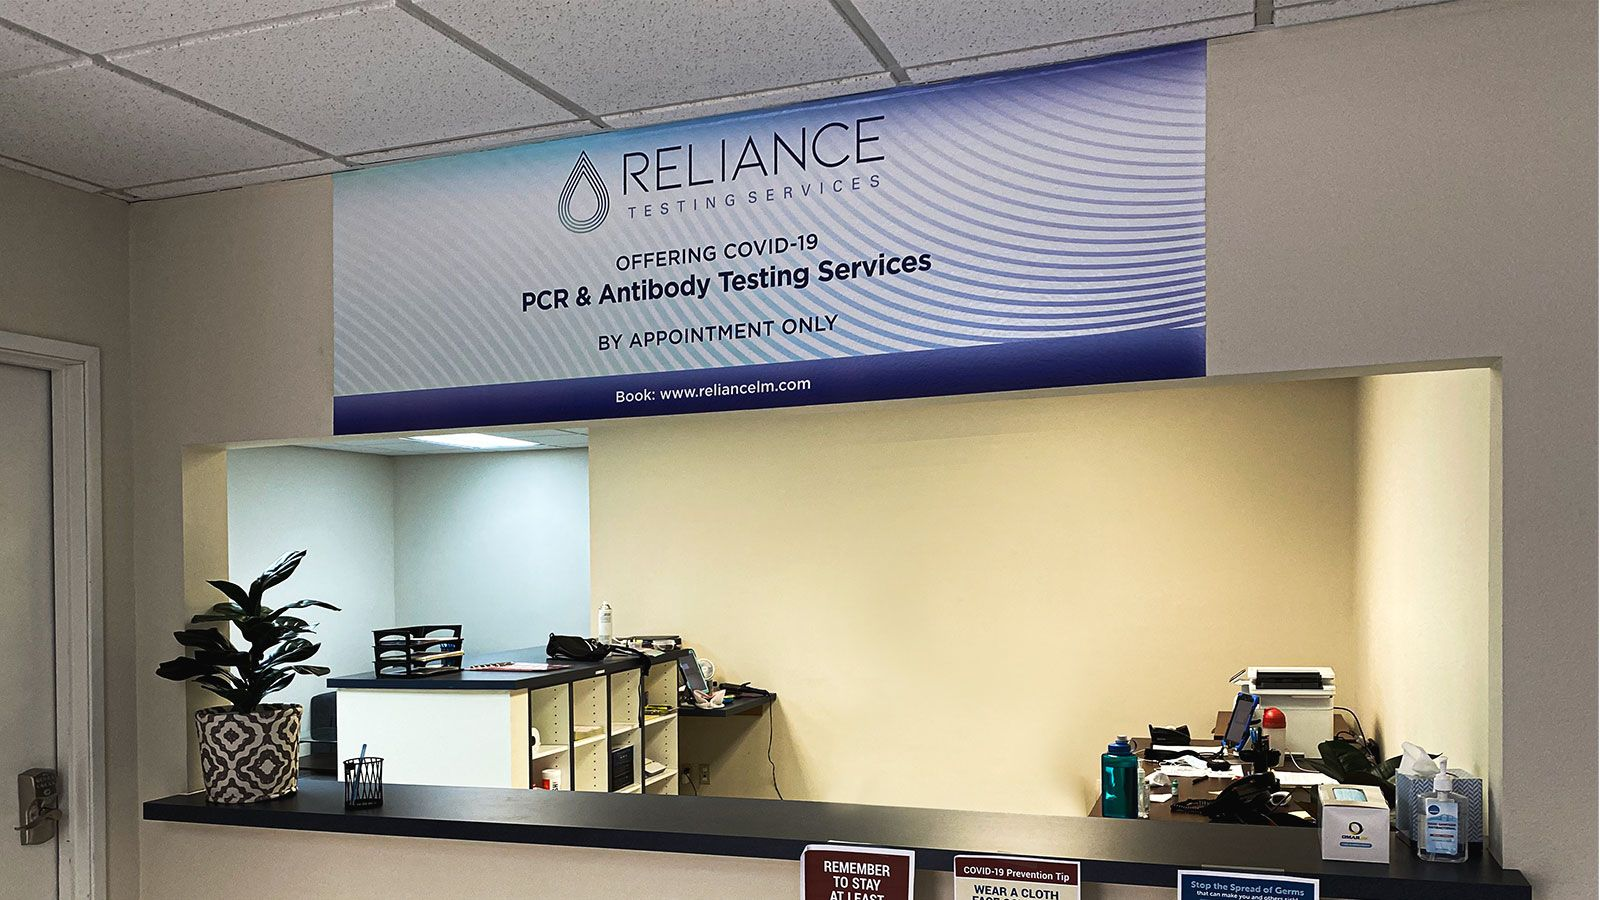 Reliance wall decal